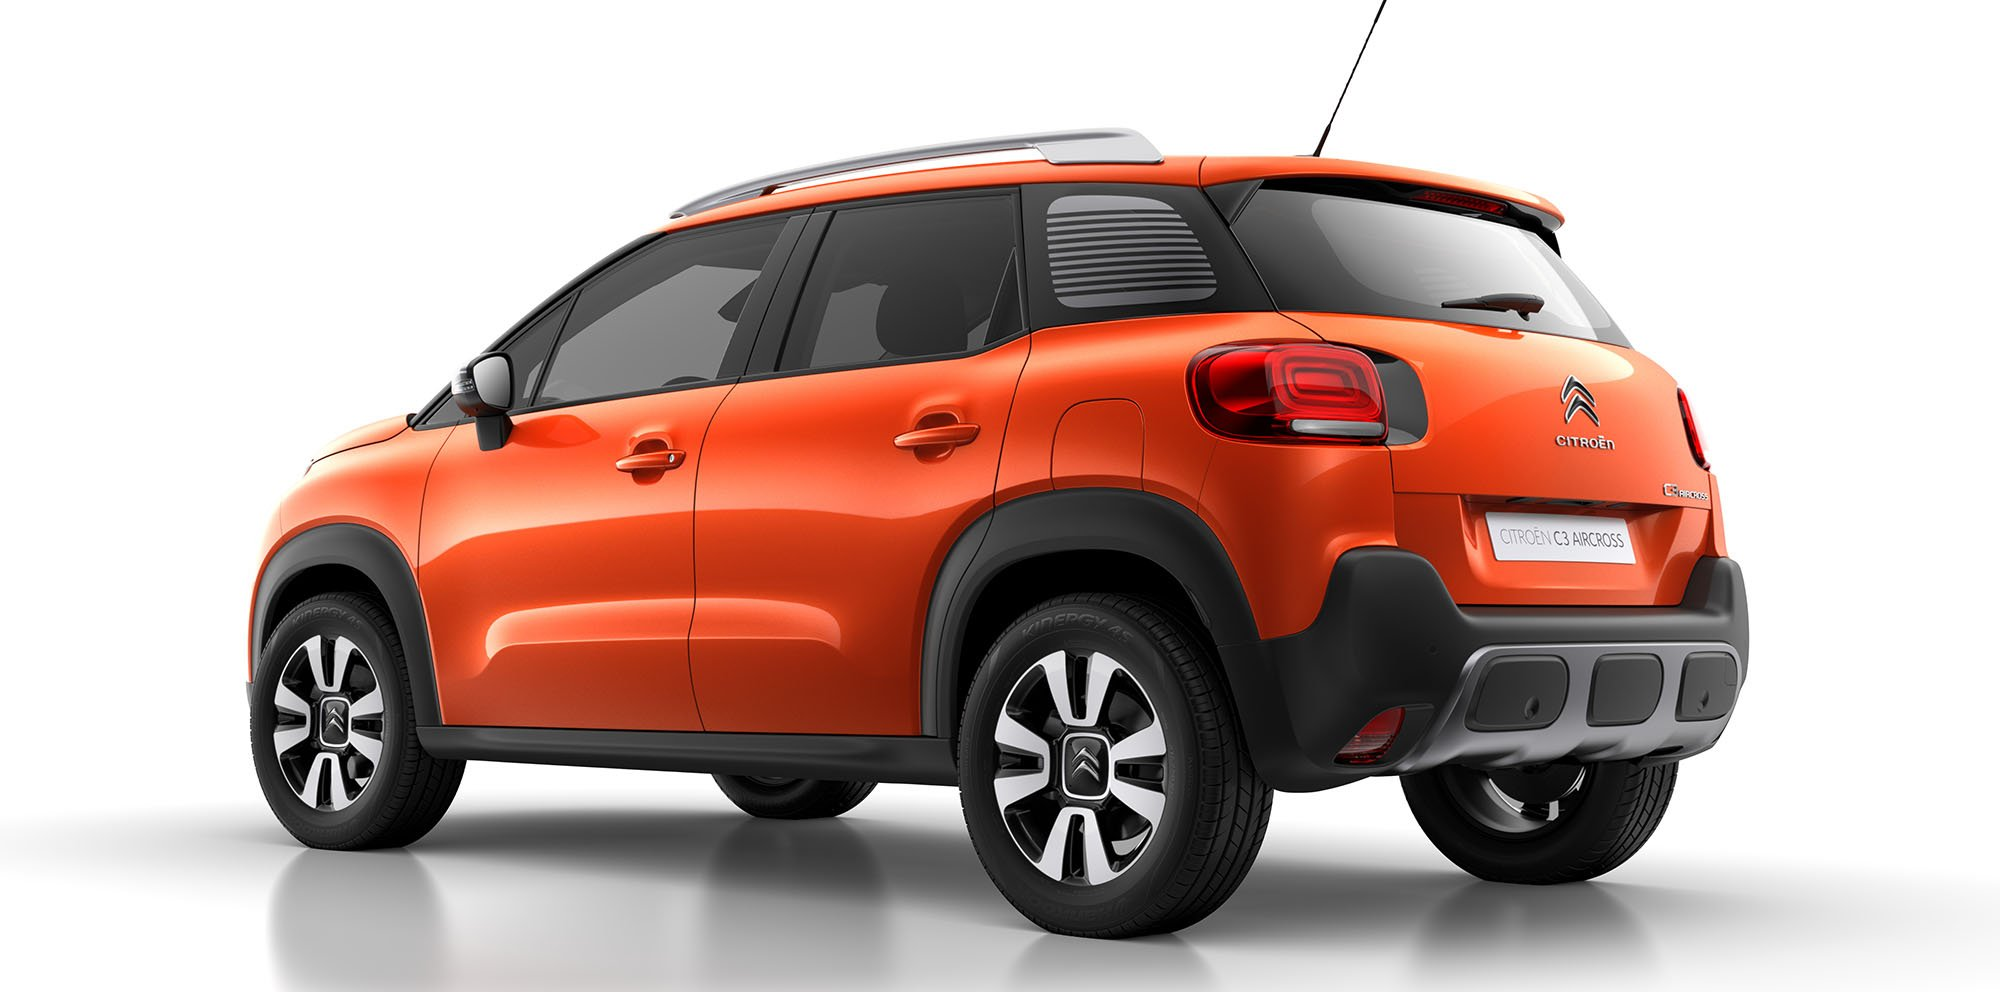 2018 citroen c3 aircross unveiled photos caradvice. Black Bedroom Furniture Sets. Home Design Ideas